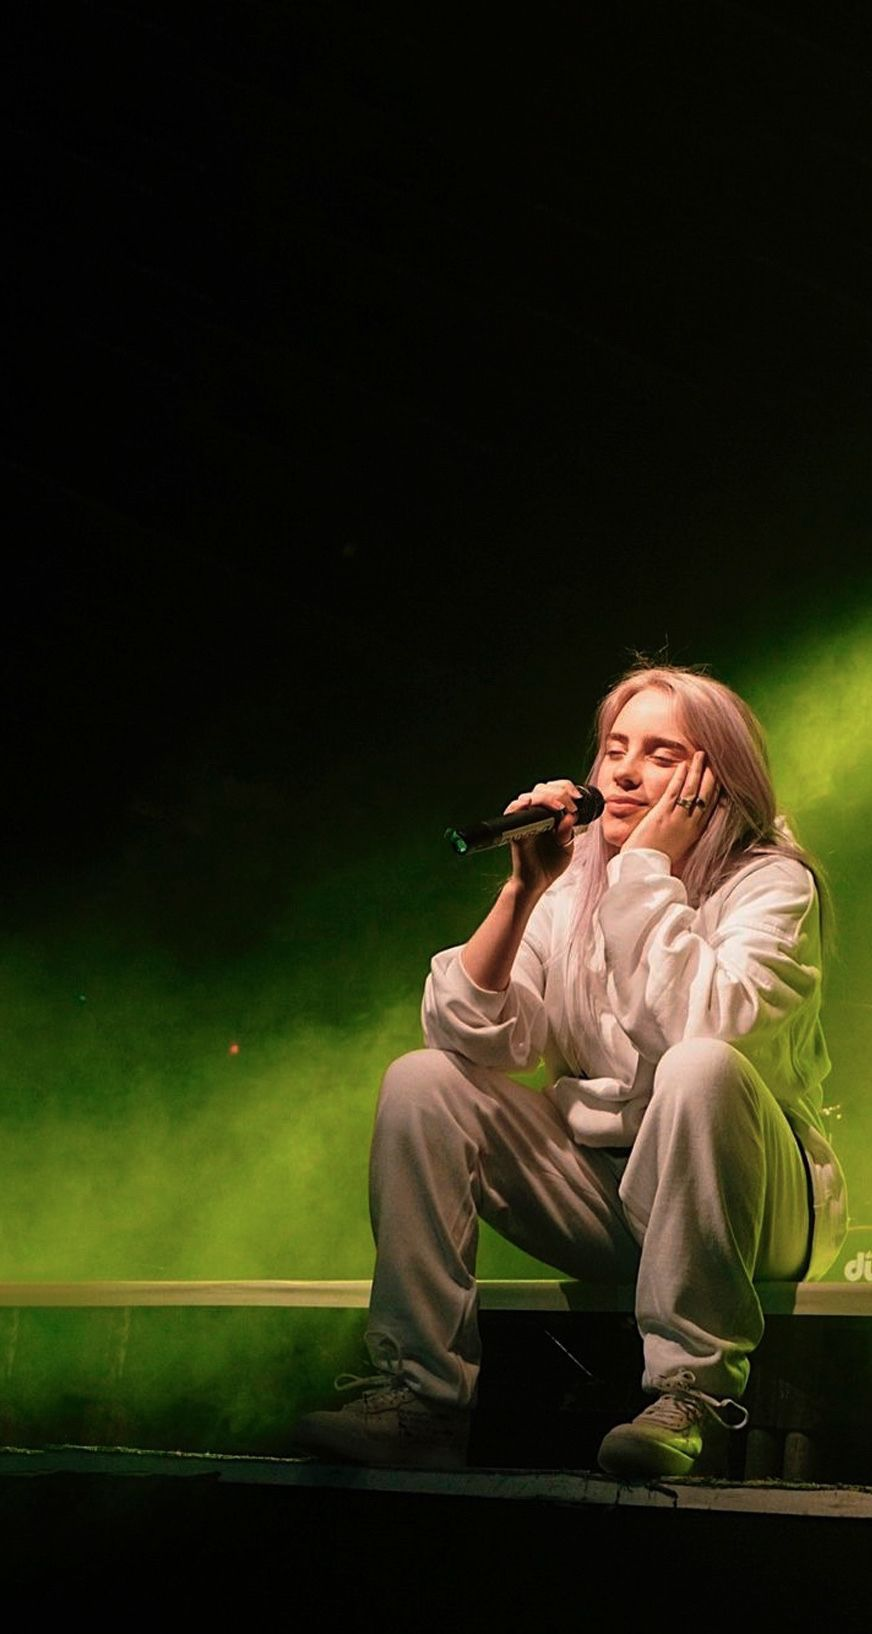 Billie Eilish Wallpaper Wallpaper Celebrities Bi In 2020 Billie Eilish Billie Celebrities